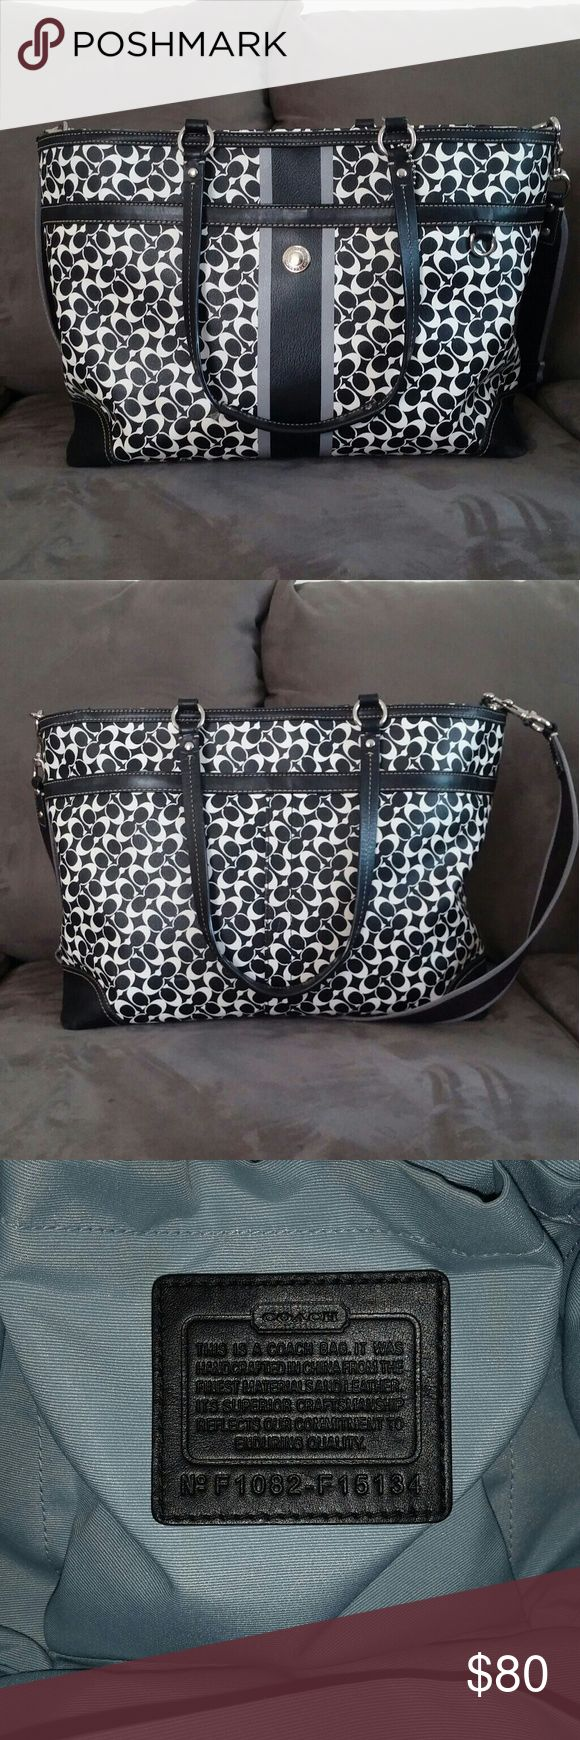 Coach Chelsea Diaper Bag Large sturdy black and white Coach diaper bag or large tote.  Two large outer side pockets.  Lots of inner pockets.  Includes cross body strap, changing pad (some small marks) and coordinating scarf.  Minimal wear and tear.  Leather on bottom corners has some scuffing.  Feel free to ask any questions.  I used this bag for a few months, but am not the original owner. Coach Bags Baby Bags